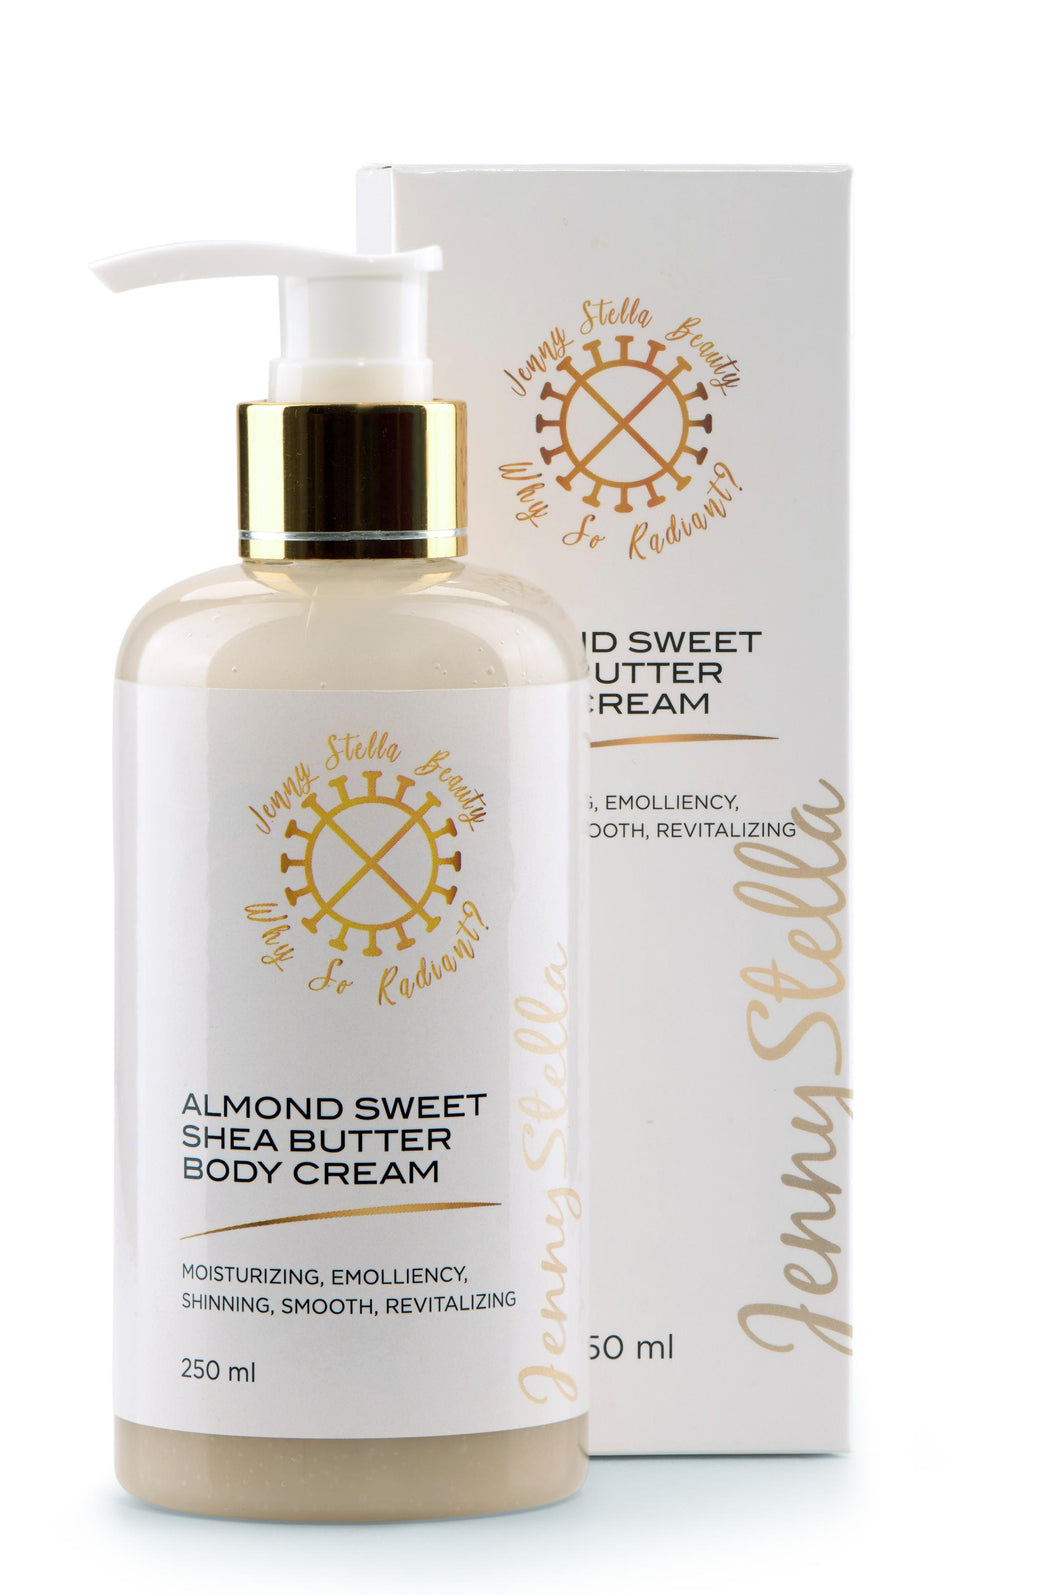 Almond Sweet Shea Butter Body Cream 250ml - Jennystellabeauty